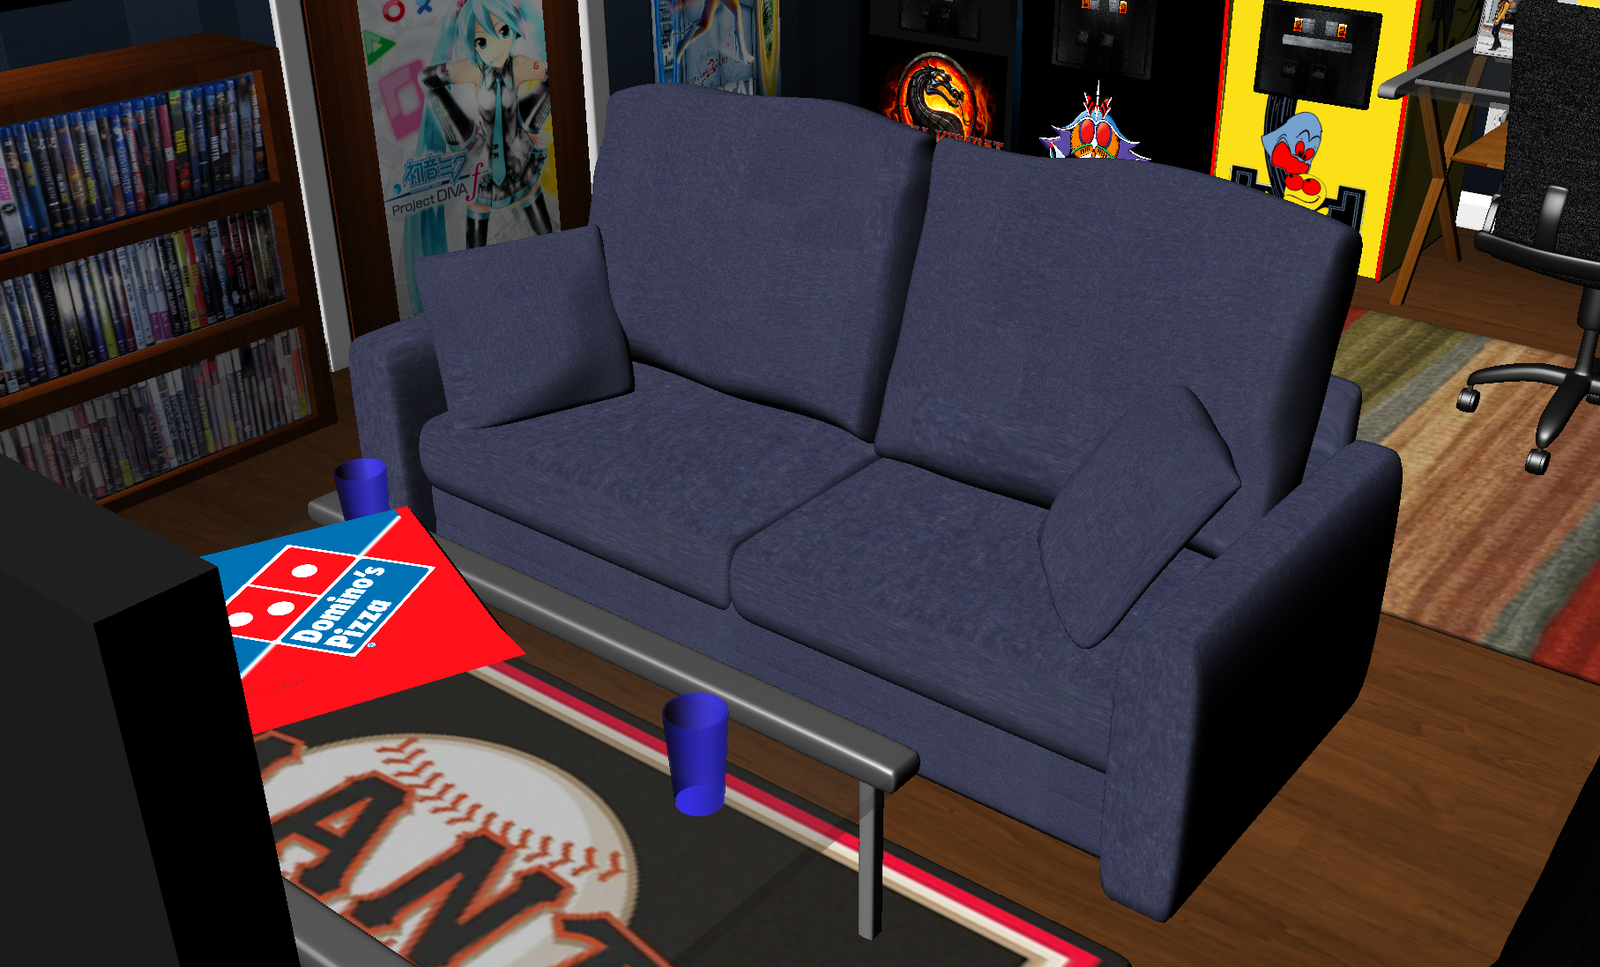 Dorm Room Couch By Greenmachine987 On Deviantart